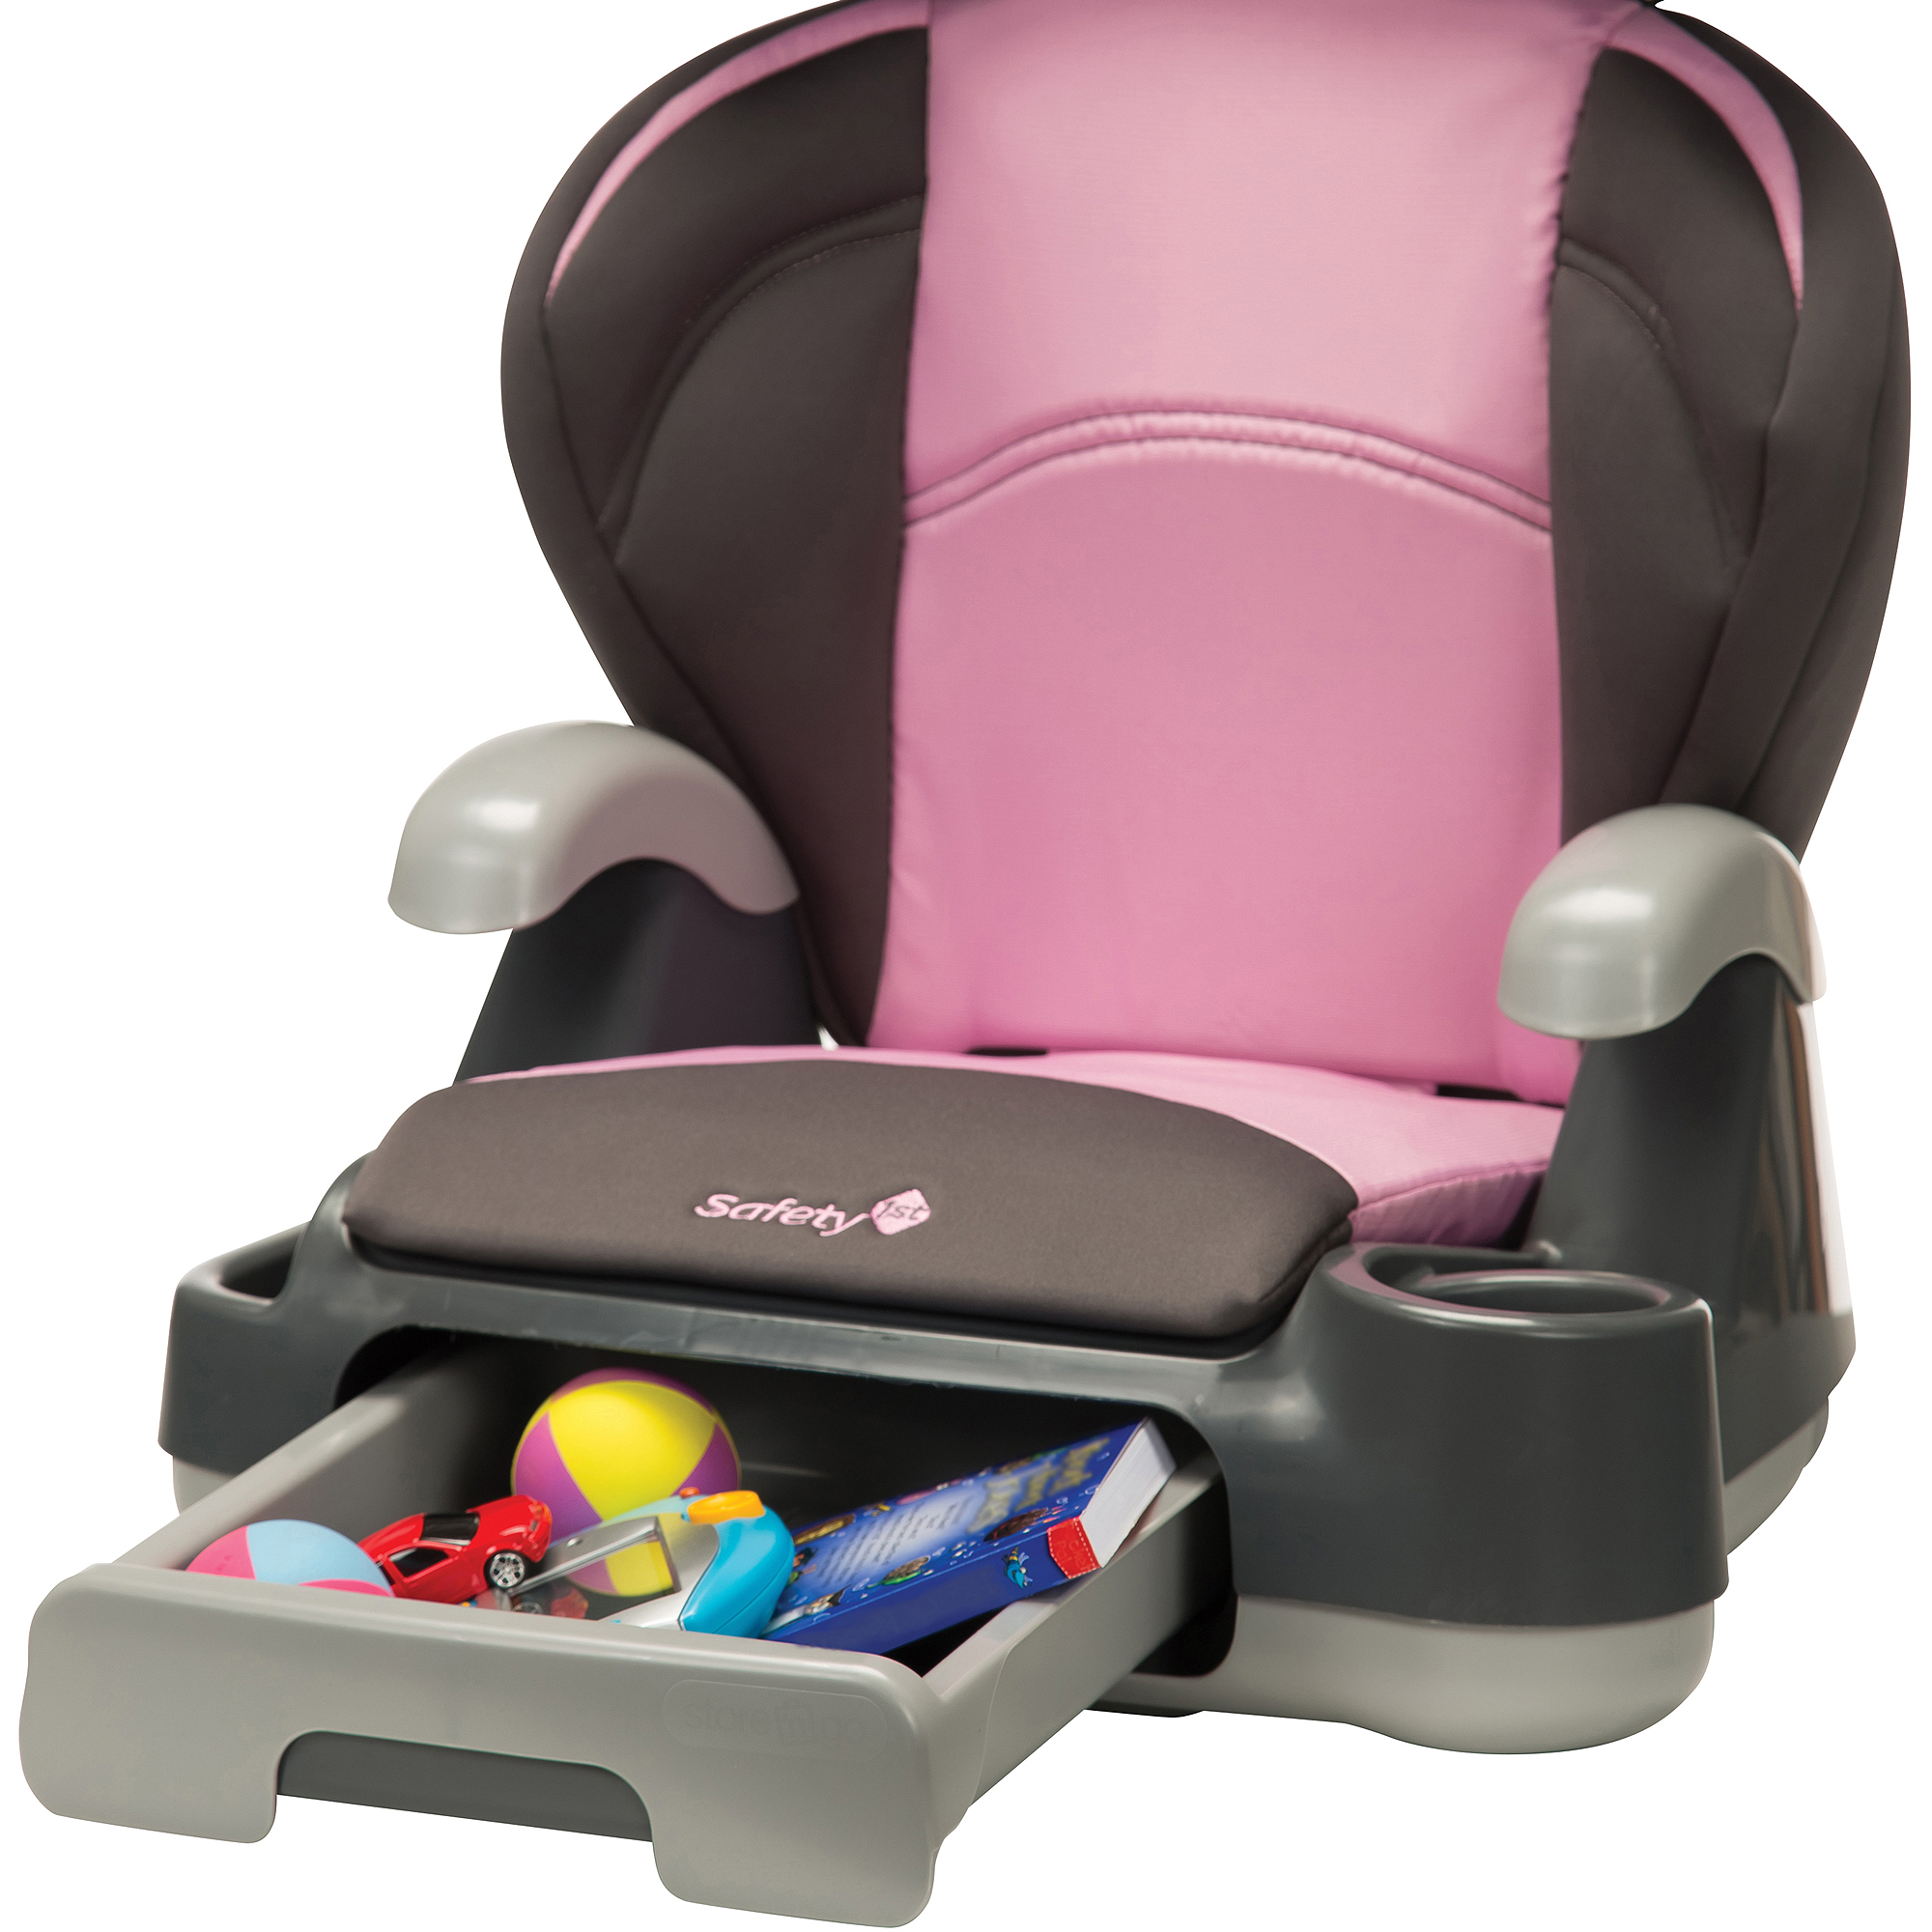 Overstock Safety 1st Store 'n Go Booster Car Seat in Nora